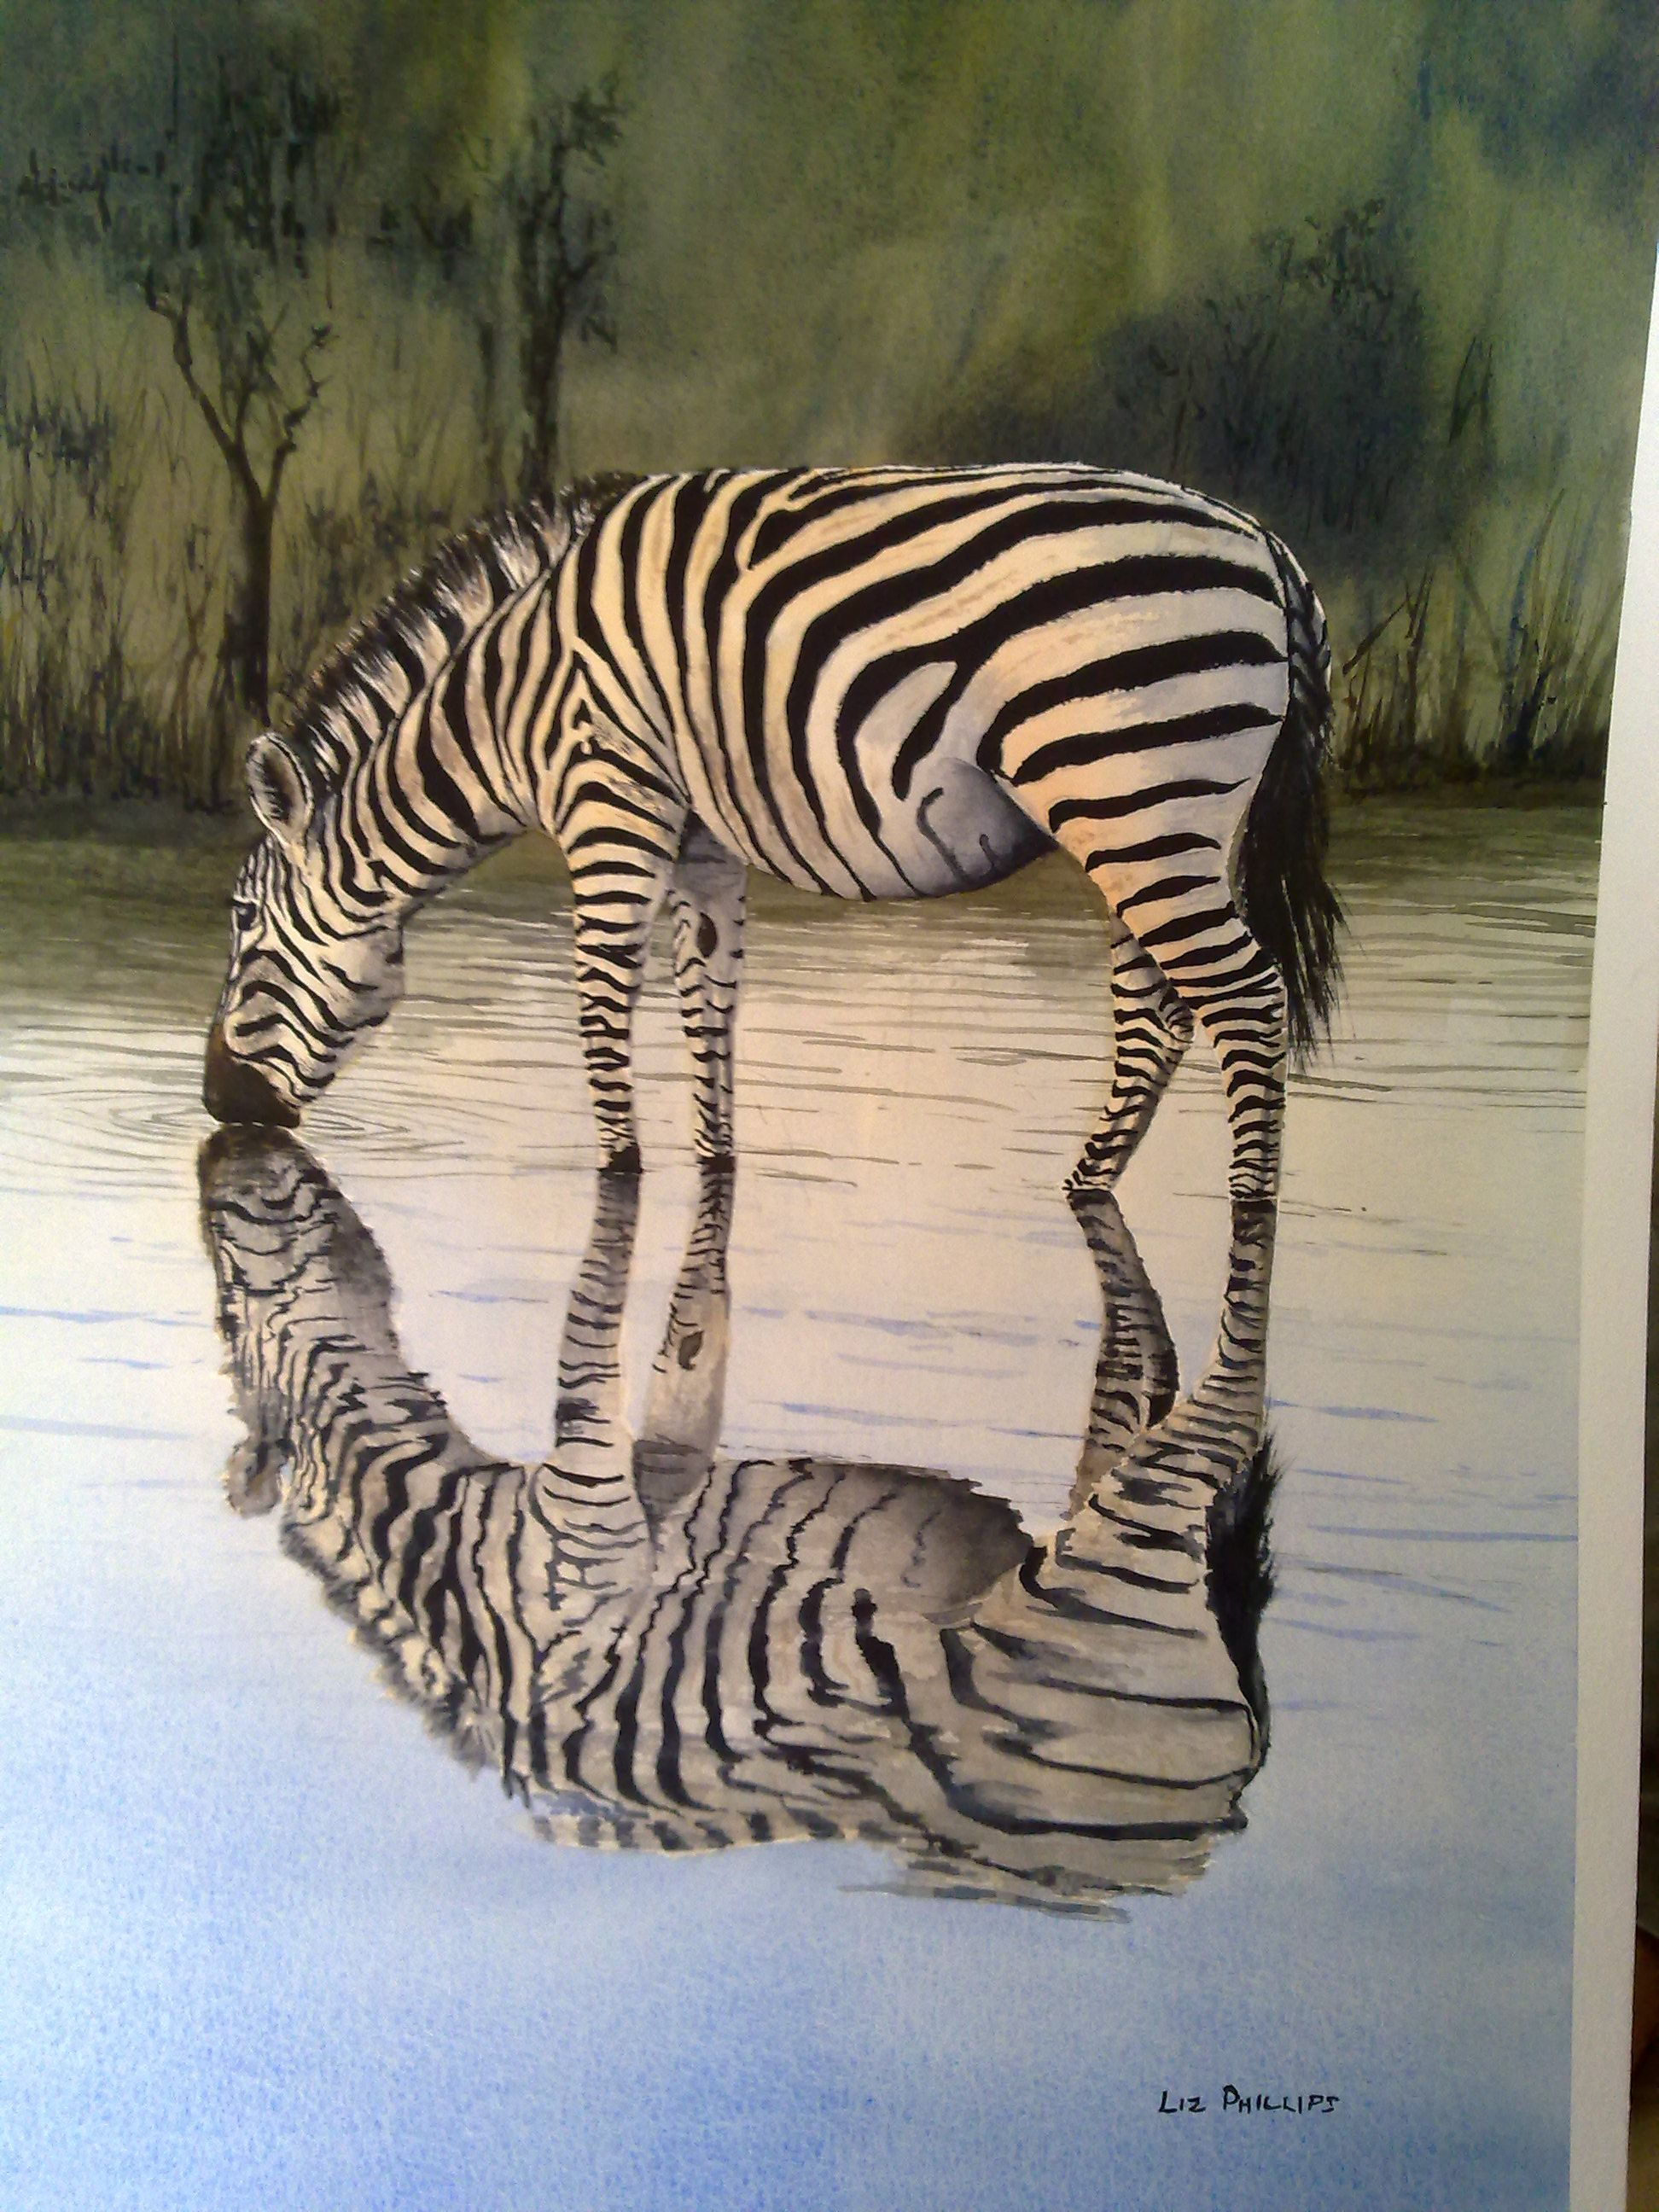 One of my best so far - Zebra in the reflection series